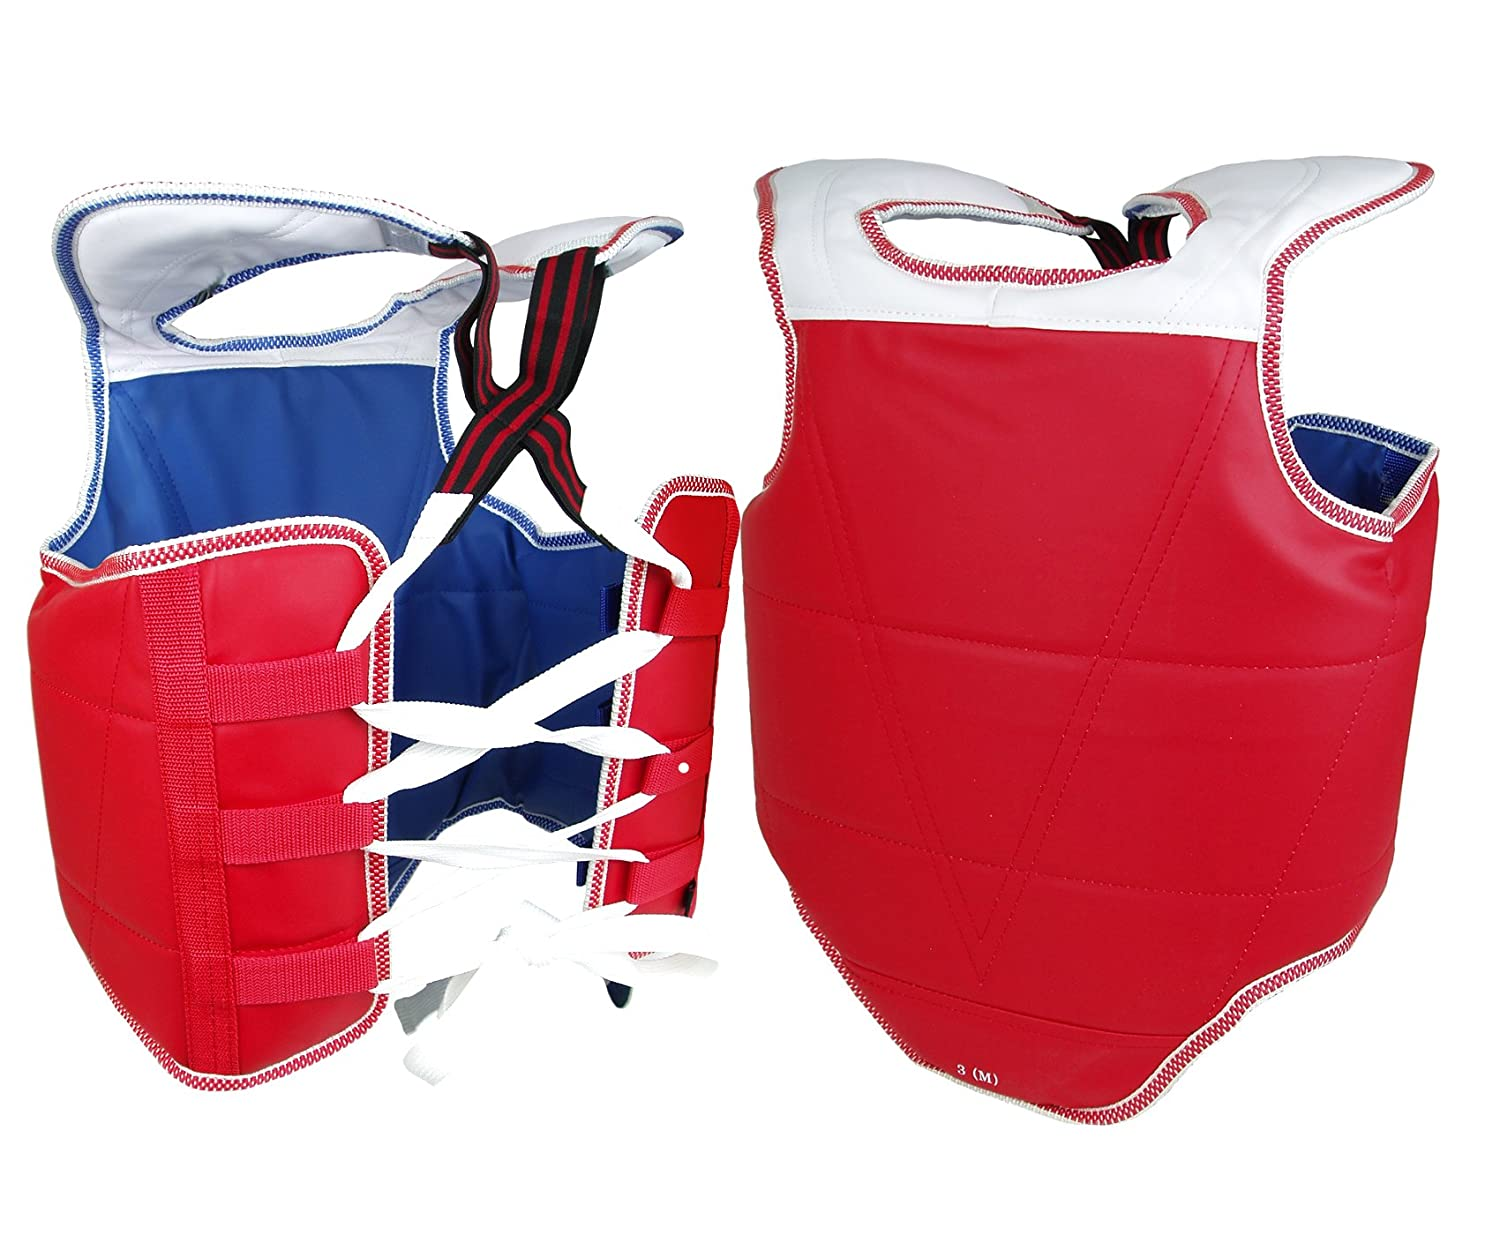 PROWIN1 New Martial Arts Chest Guard Reversible Body Protector Taekwondo Sparring Gear